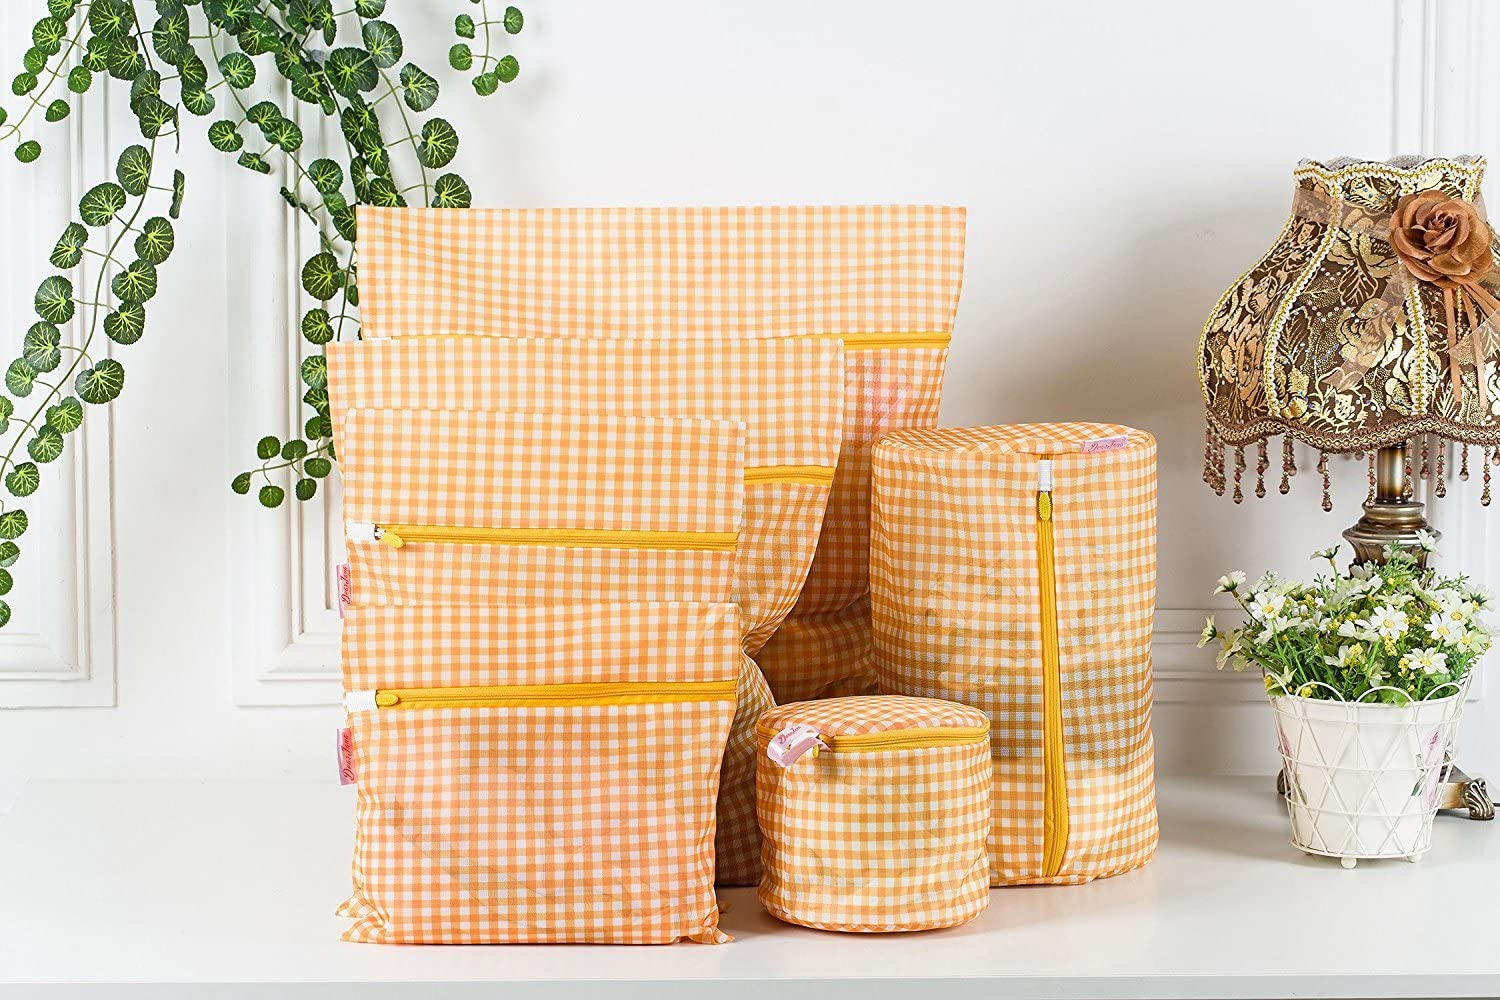 Set of 6 Delicates Mesh Laundry Bags, Dearjana Fine Mesh Bra lingerie Protection Plaid Washing Bag for Blouse, Stocking, Underwear, Bra(Yellow)